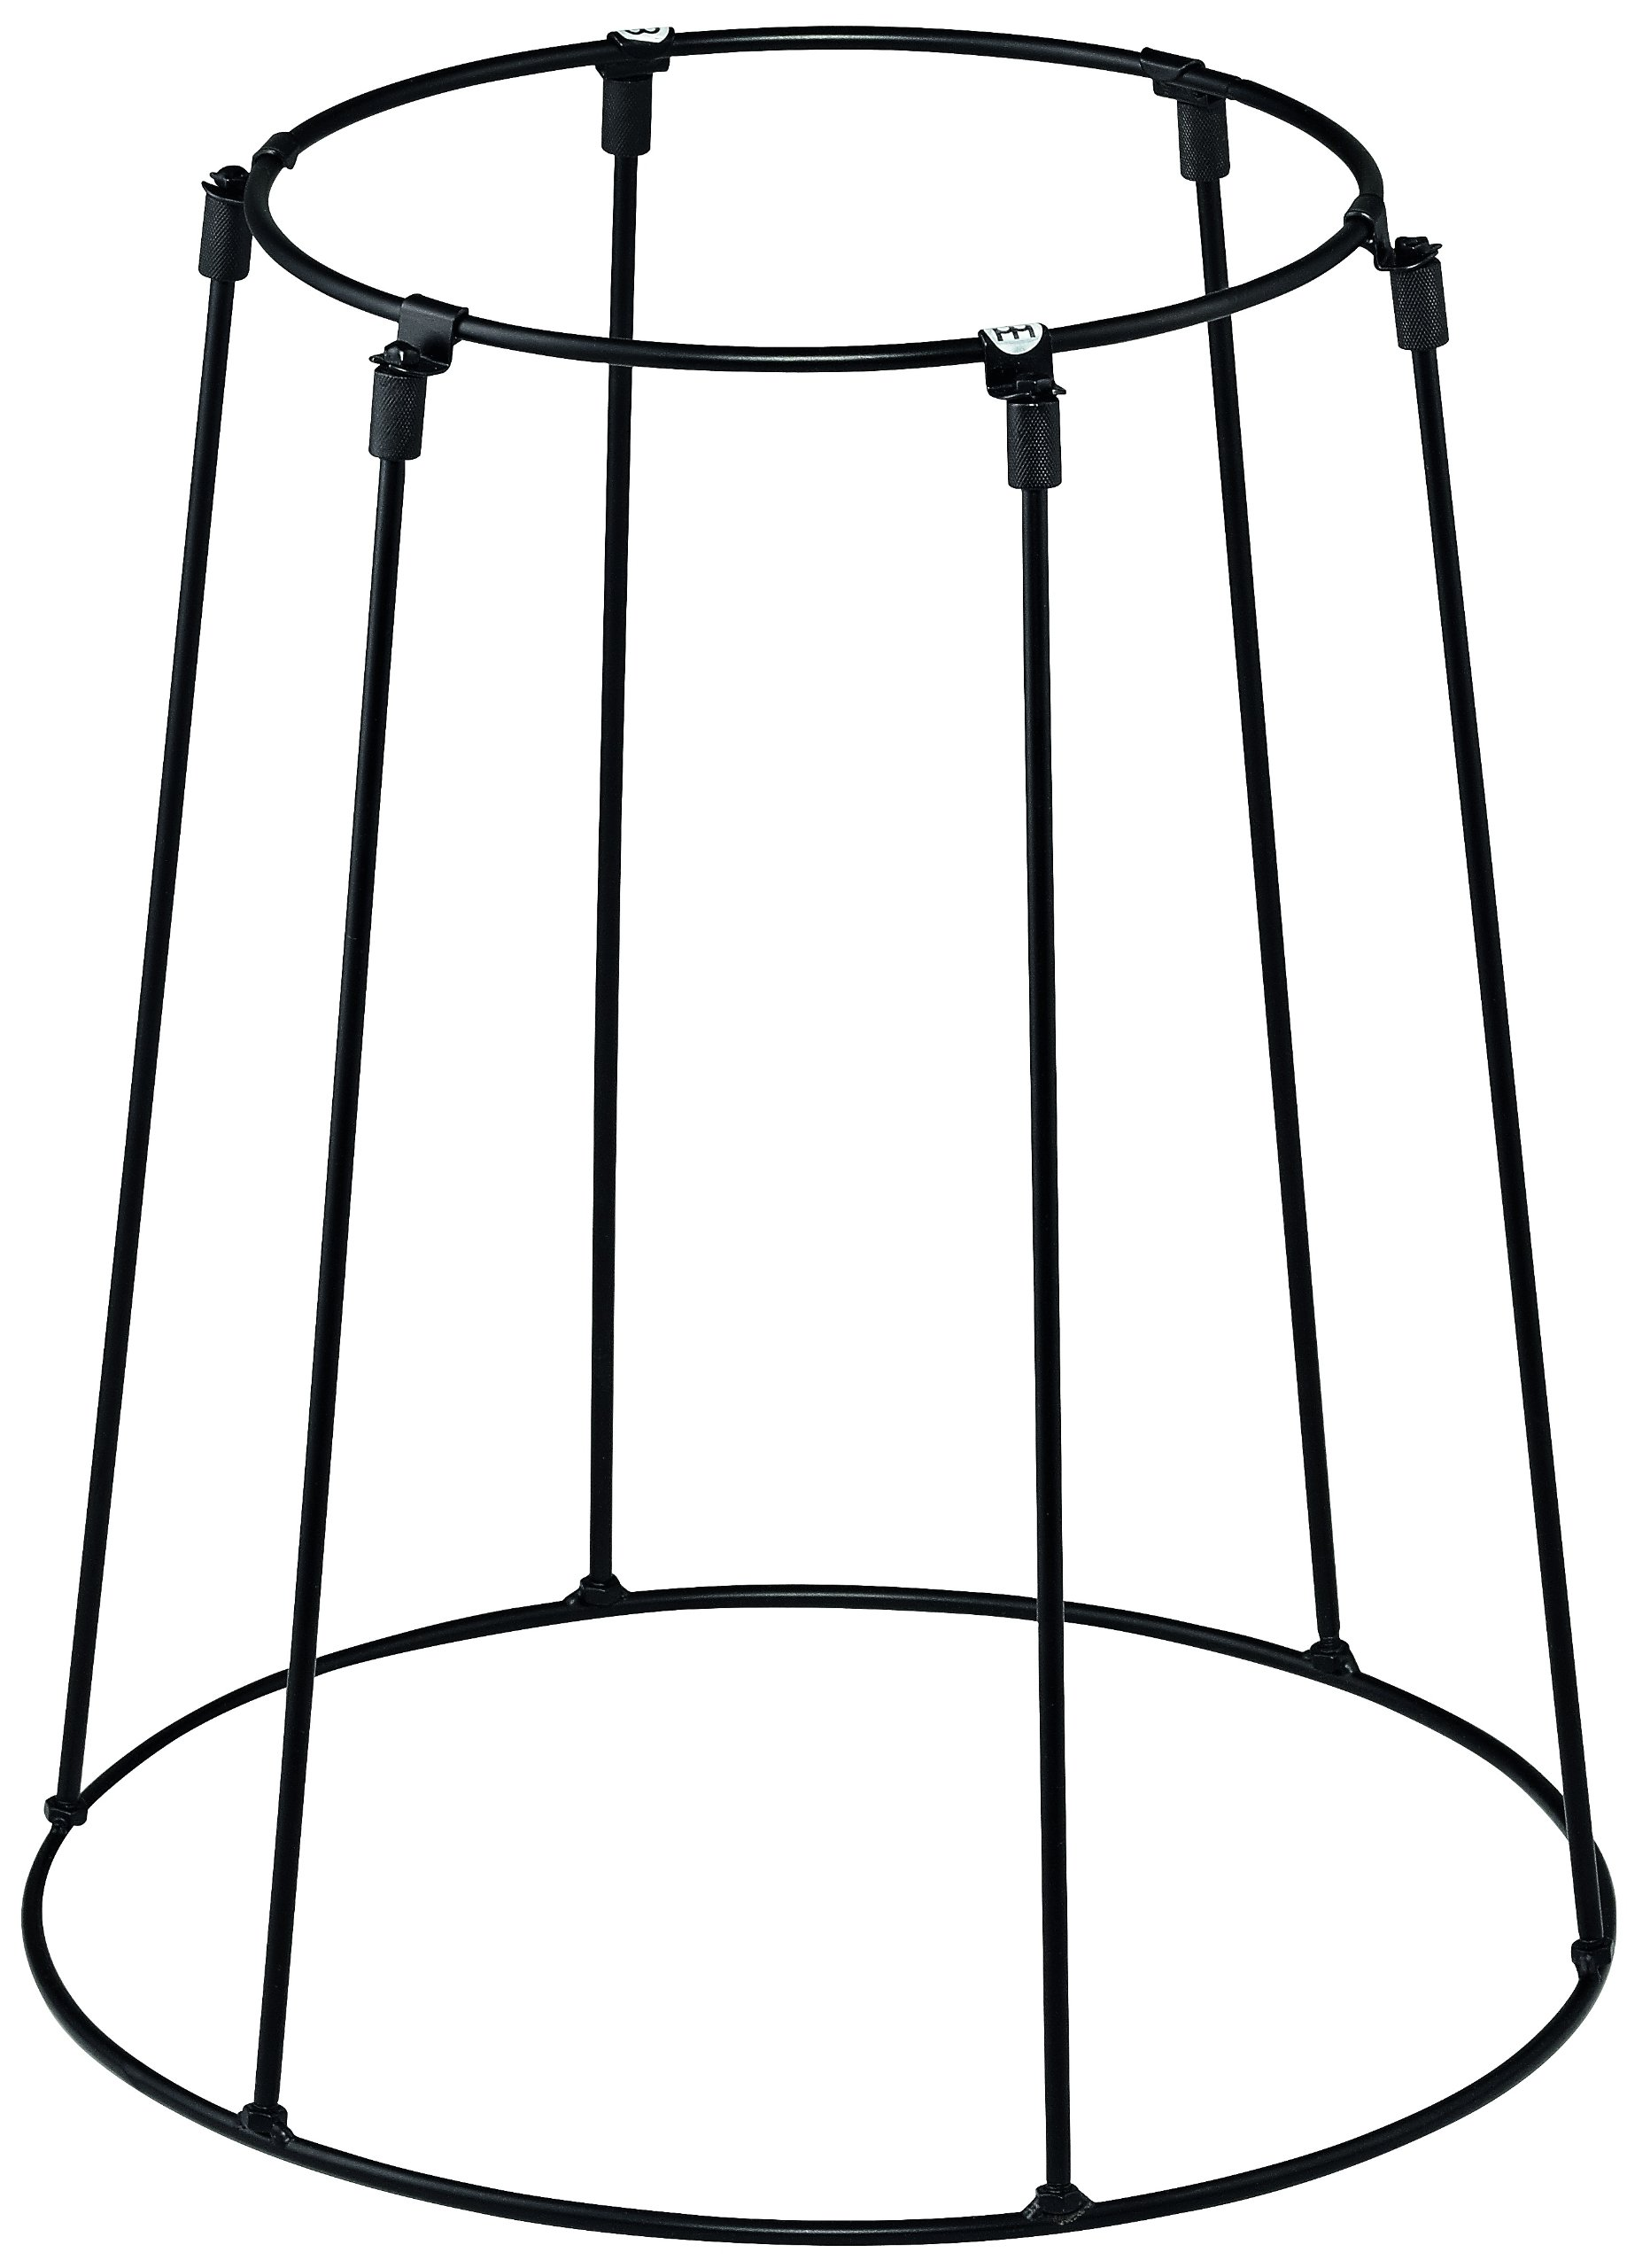 Meinl Percussion Travel Djembe Stand with Collapsible Design - NOT MADE IN CHINA - Perfect for Drum Circles, 2-YEAR WARRANTY (STDJST-BK) by Meinl Percussion